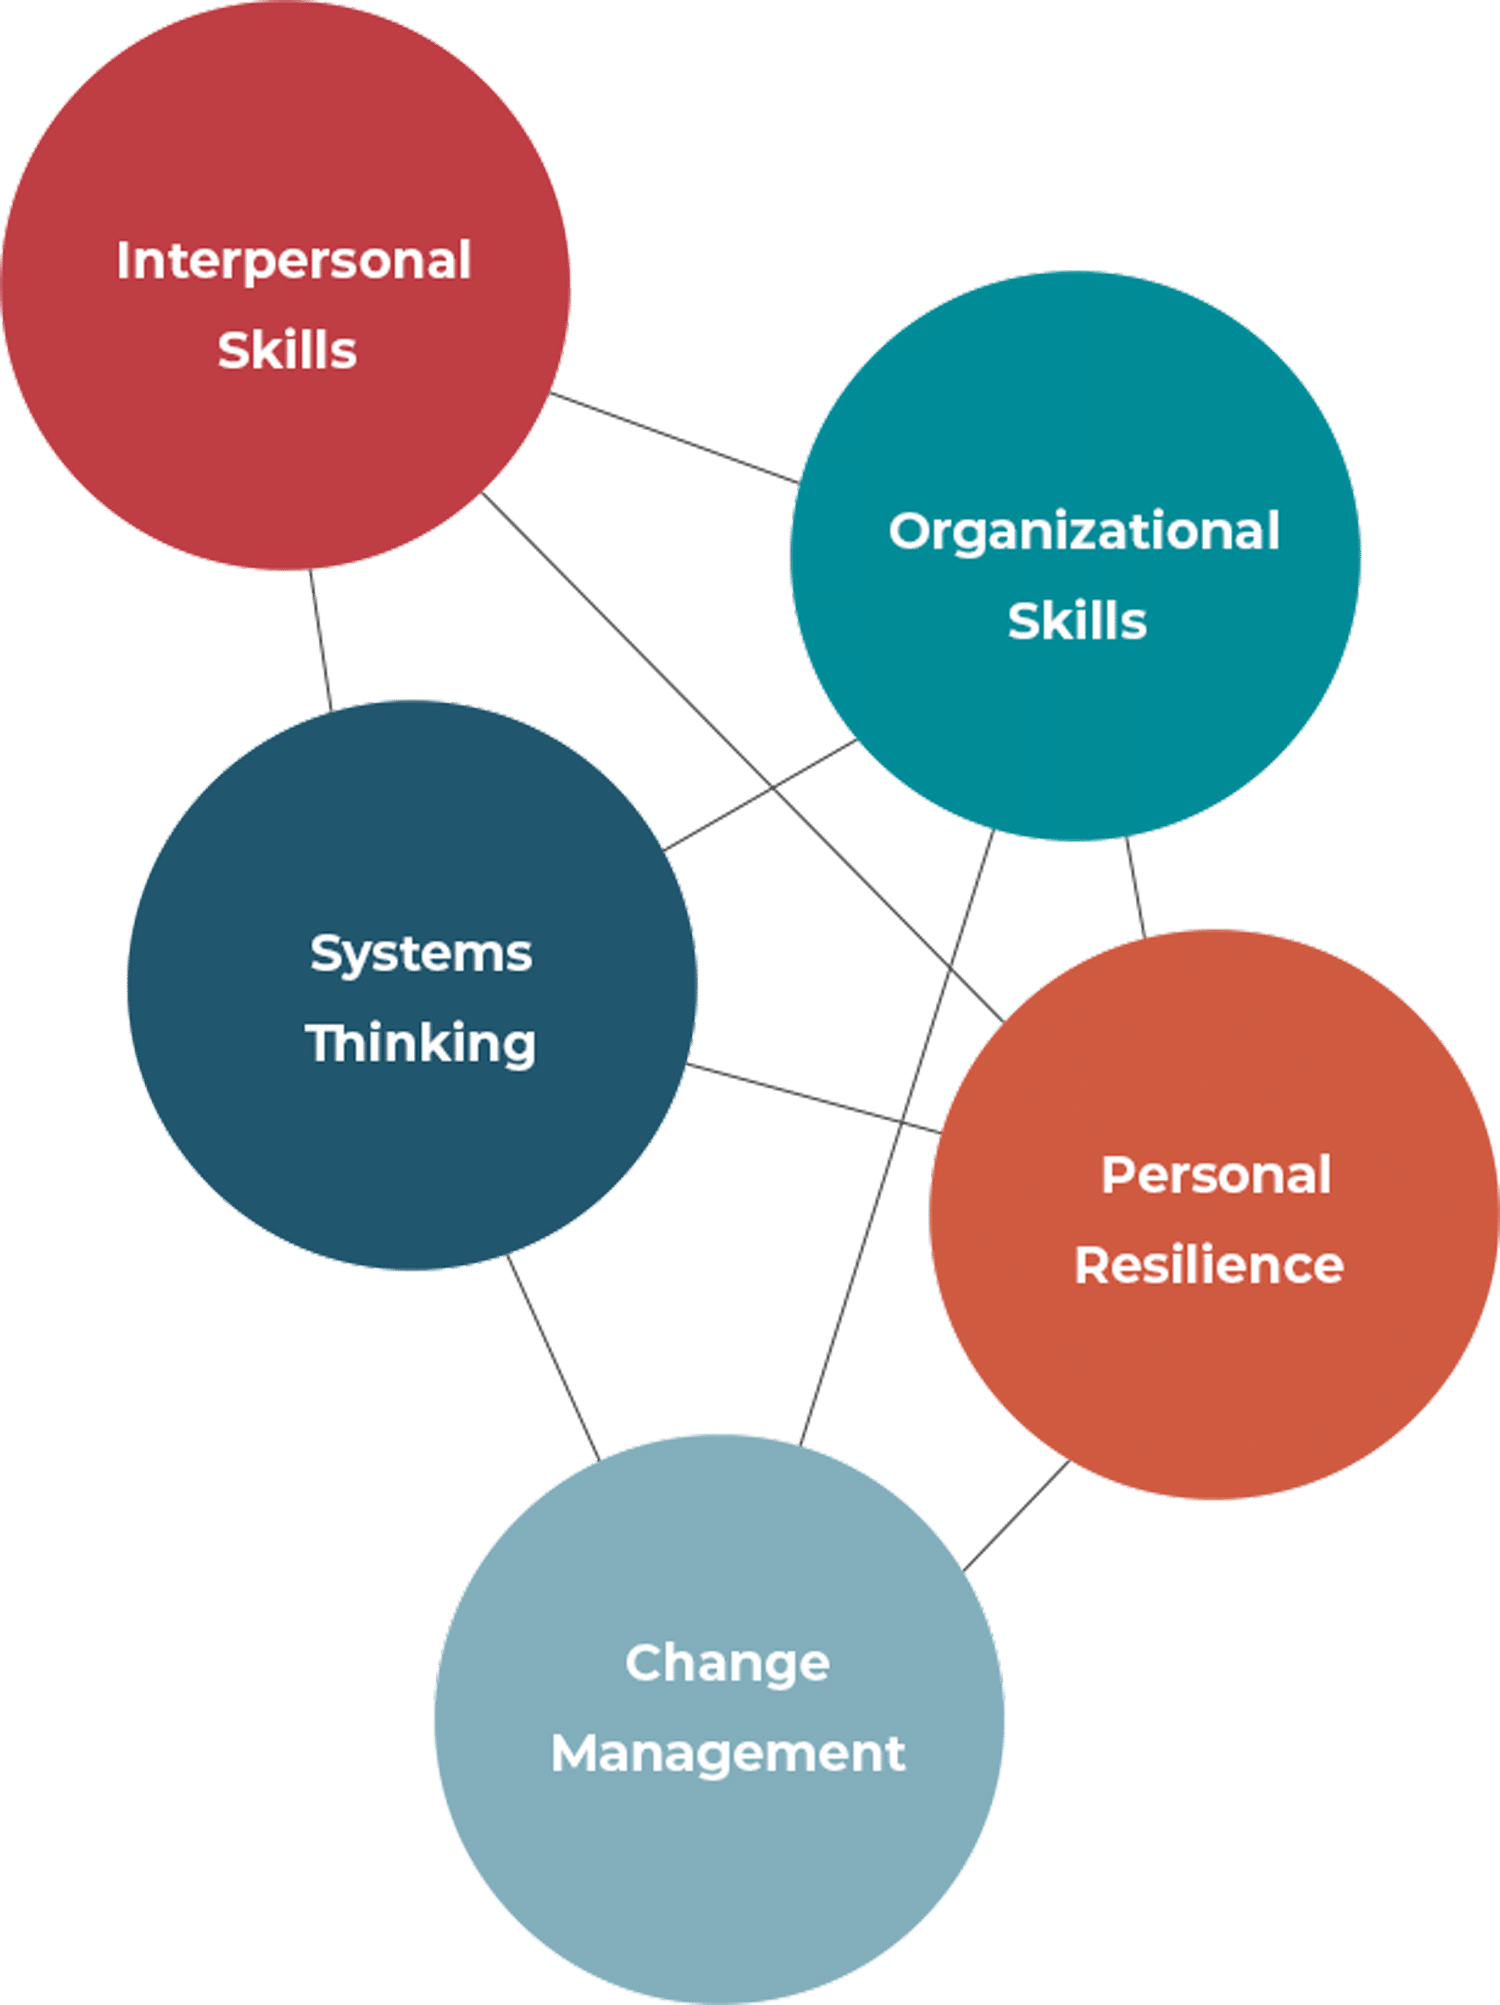 Interconnection between: Interpersonal Skills, Organizational Skills, Systems Thinking, Personal Resilience & Change Management